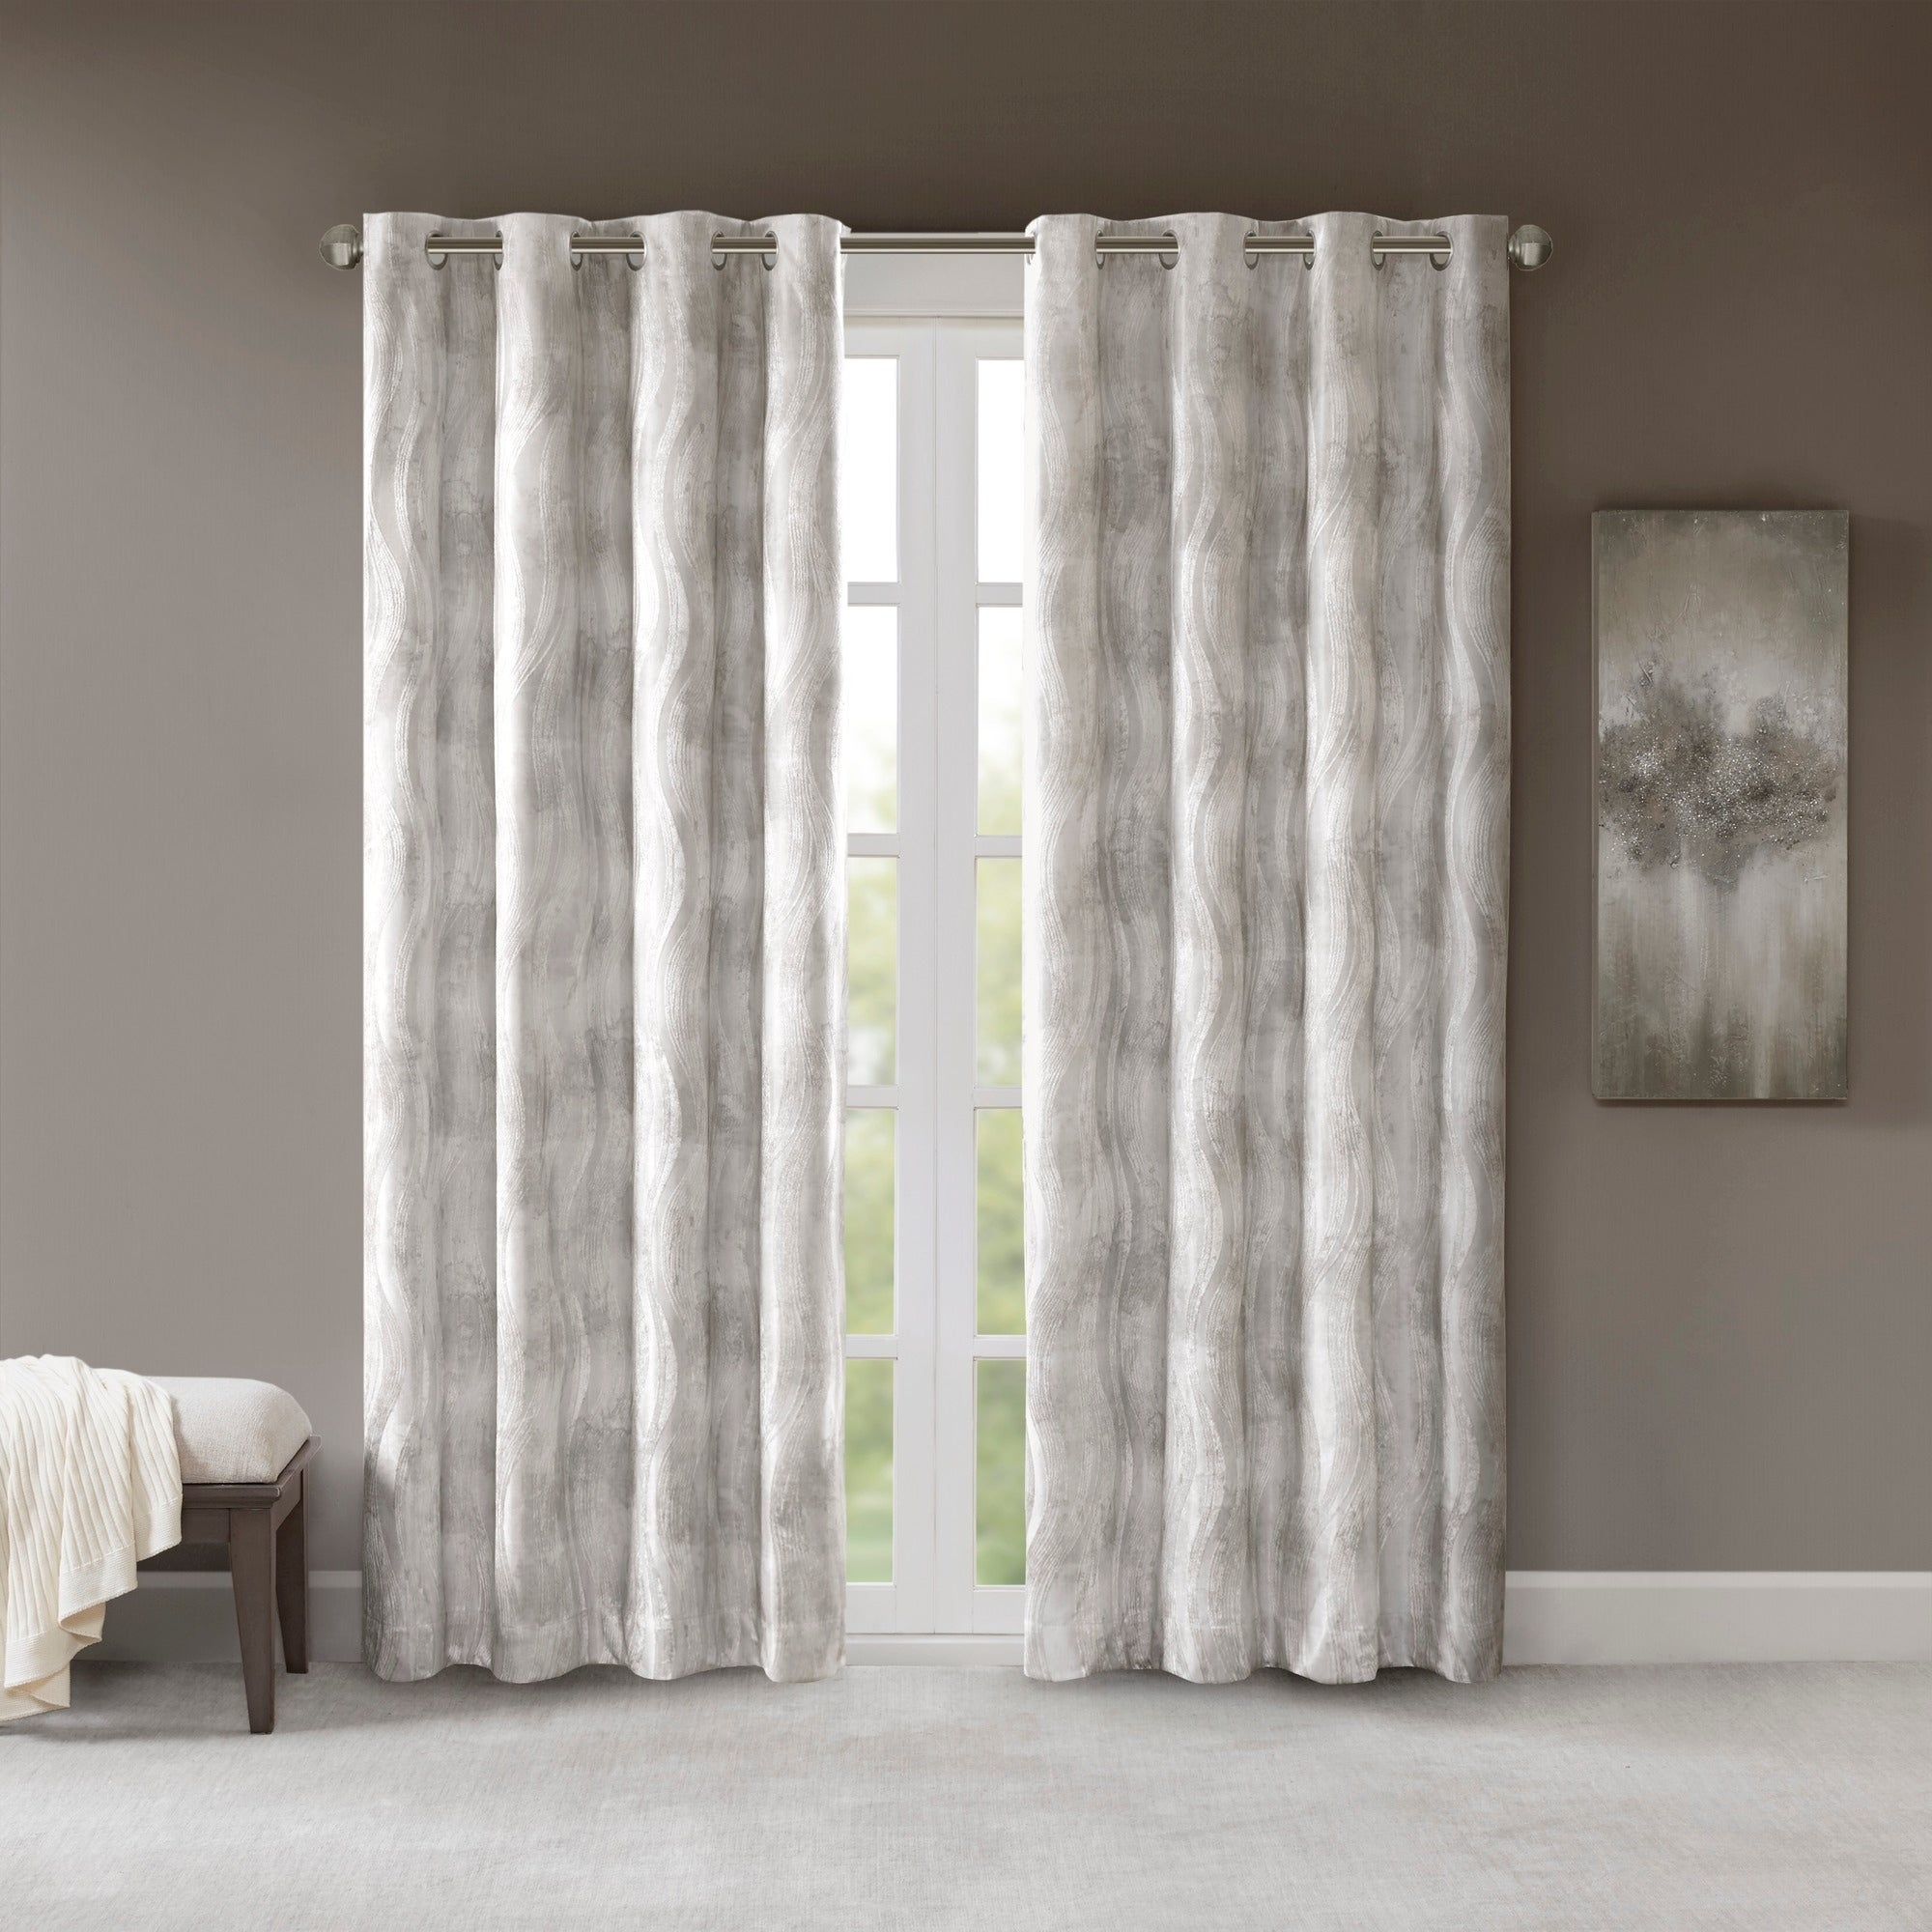 Sunsmart Alastair Ivory Printed Jacquard Total Blackout Single Curtain Panel With Regard To Sunsmart Abel Ogee Knitted Jacquard Total Blackout Curtain Panels (View 25 of 30)